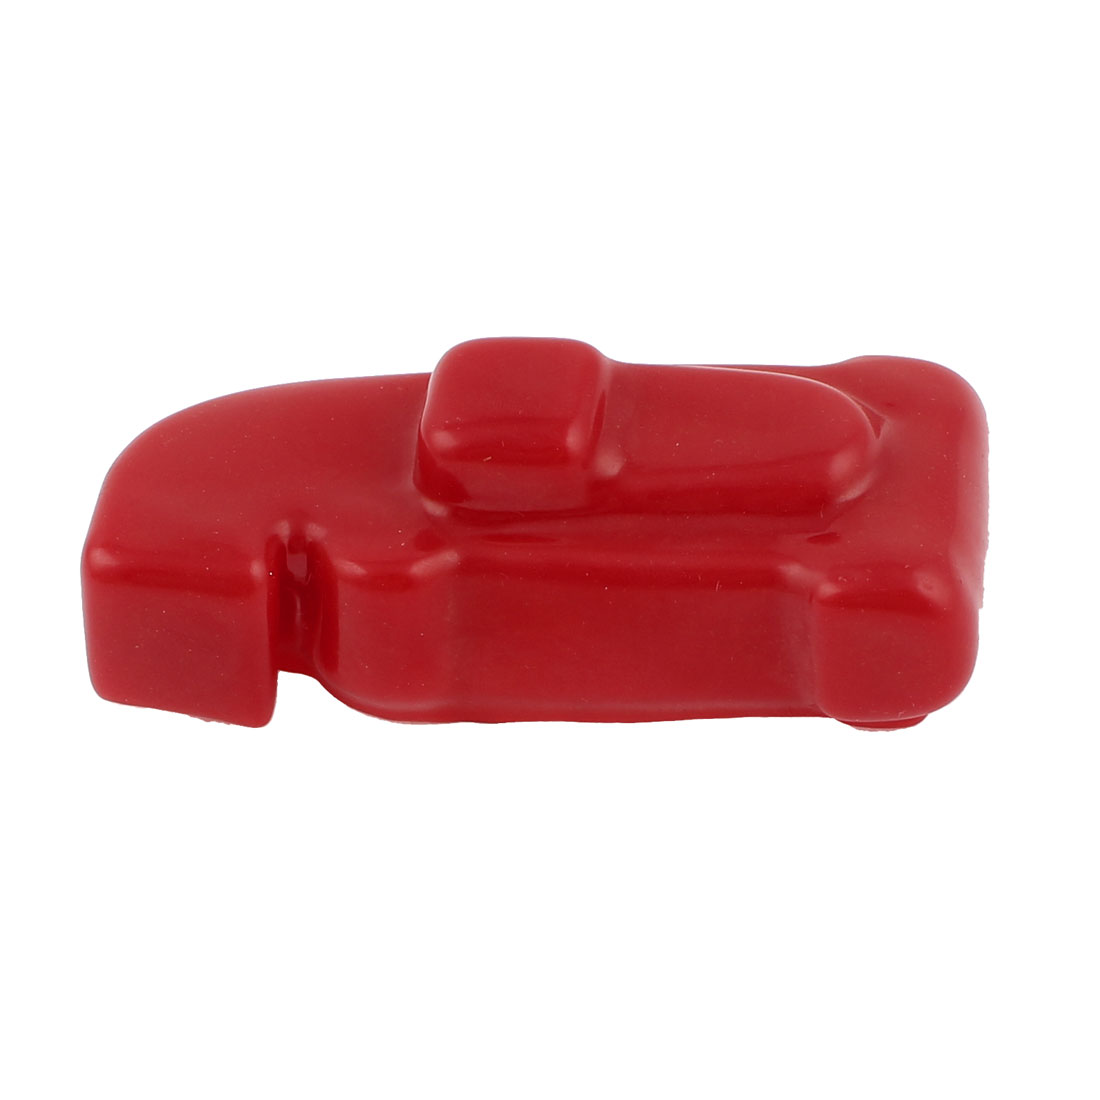 Soft PVC Battery Terminal Covers Post Boat Boot Red for Car Motor